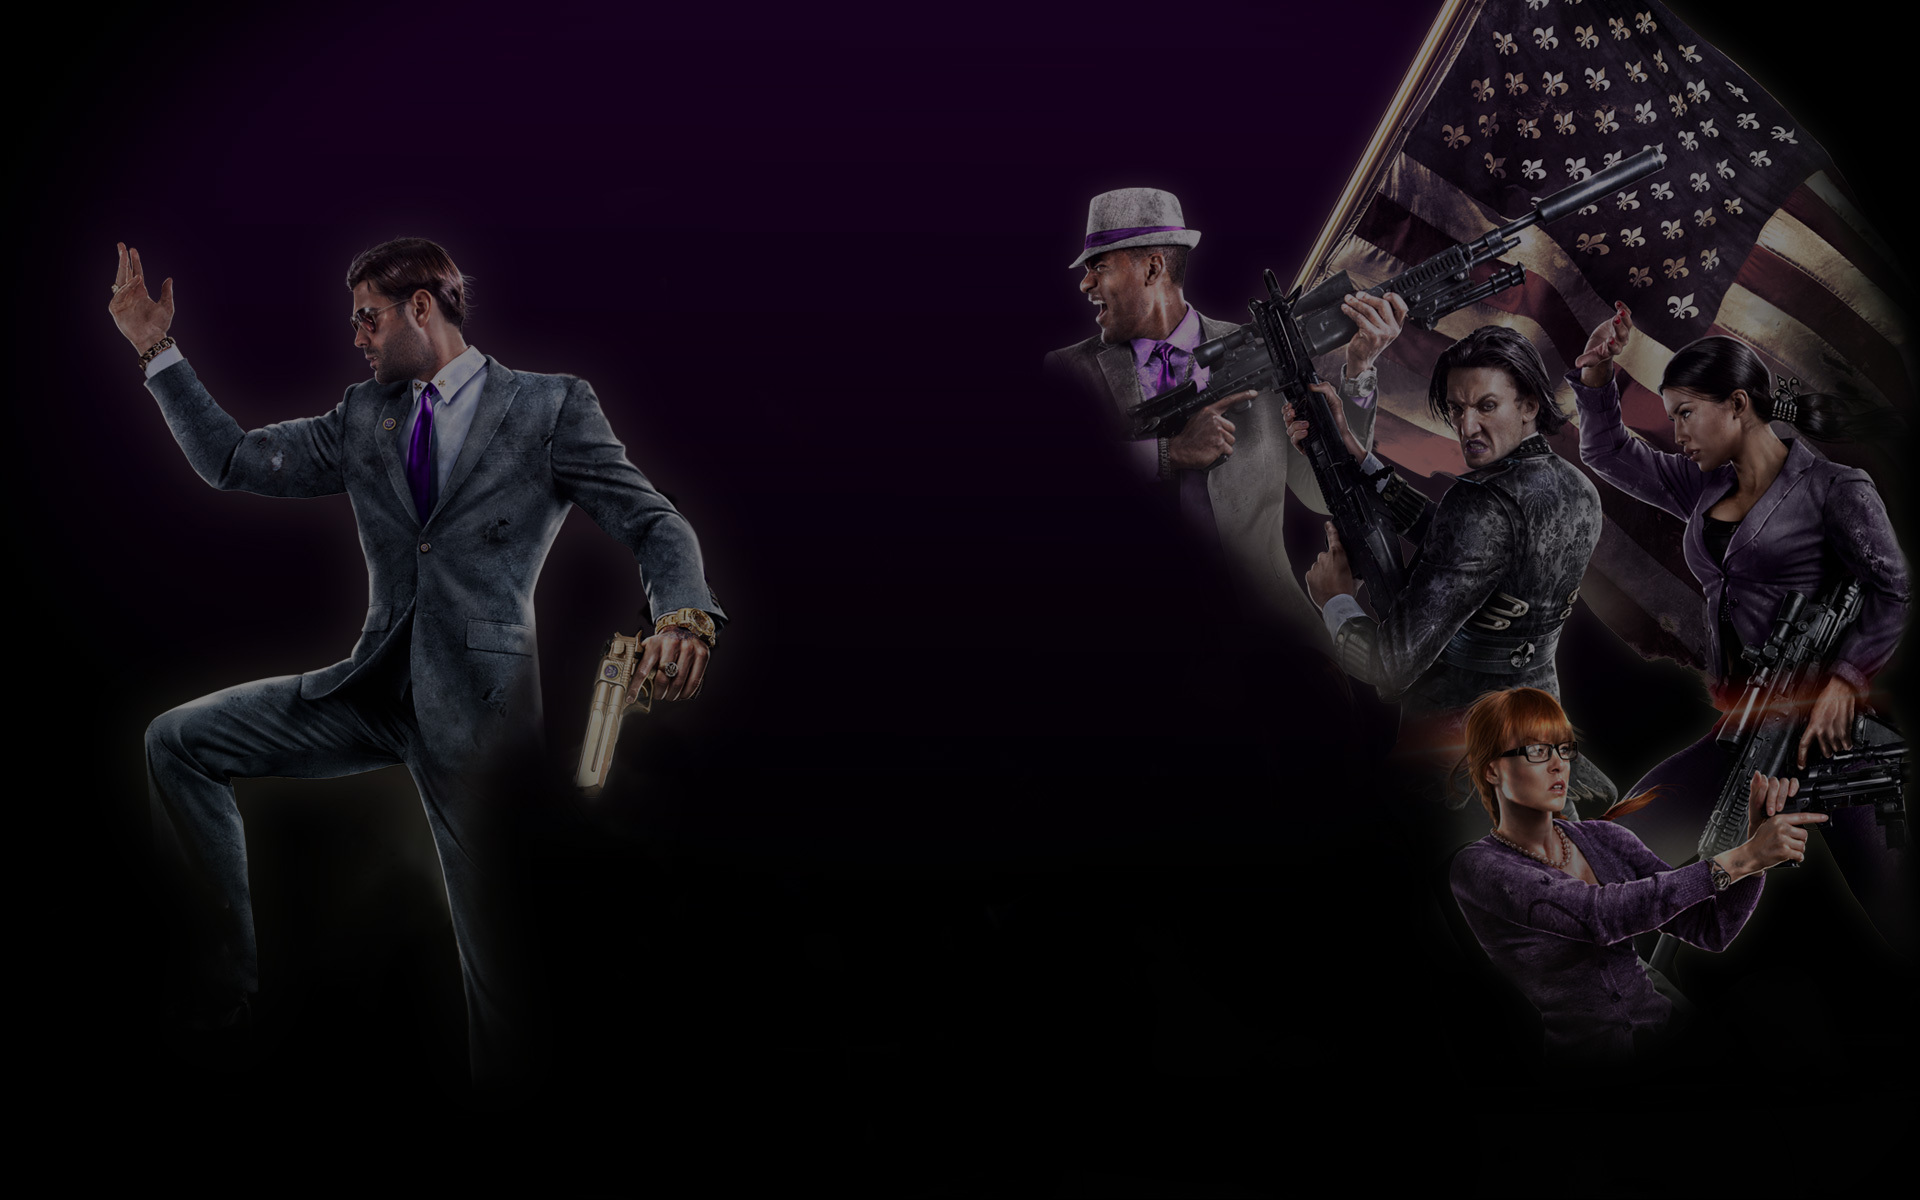 Saints Row 4 Wallpapers: Saints Row IV Full HD Wallpaper And Background Image